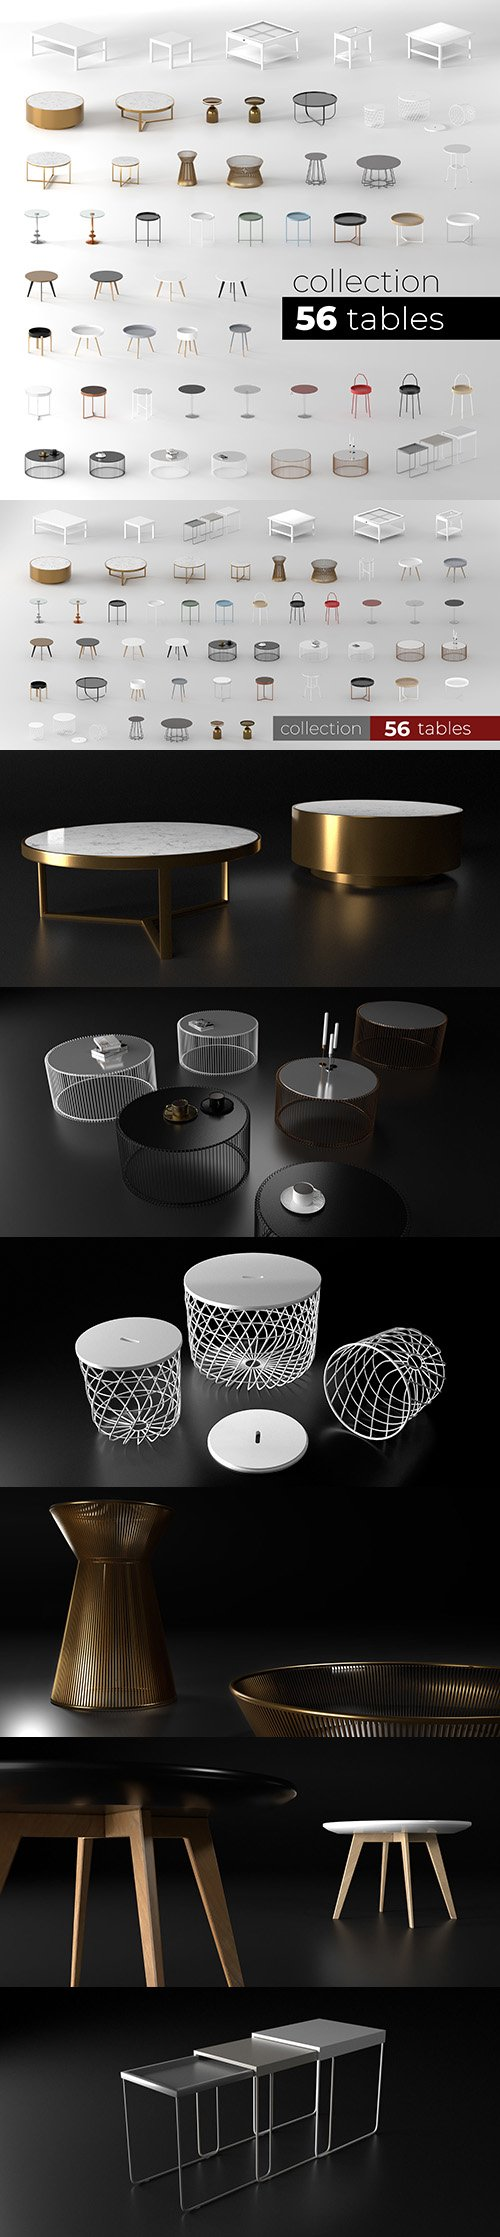 Tables collection 3D model